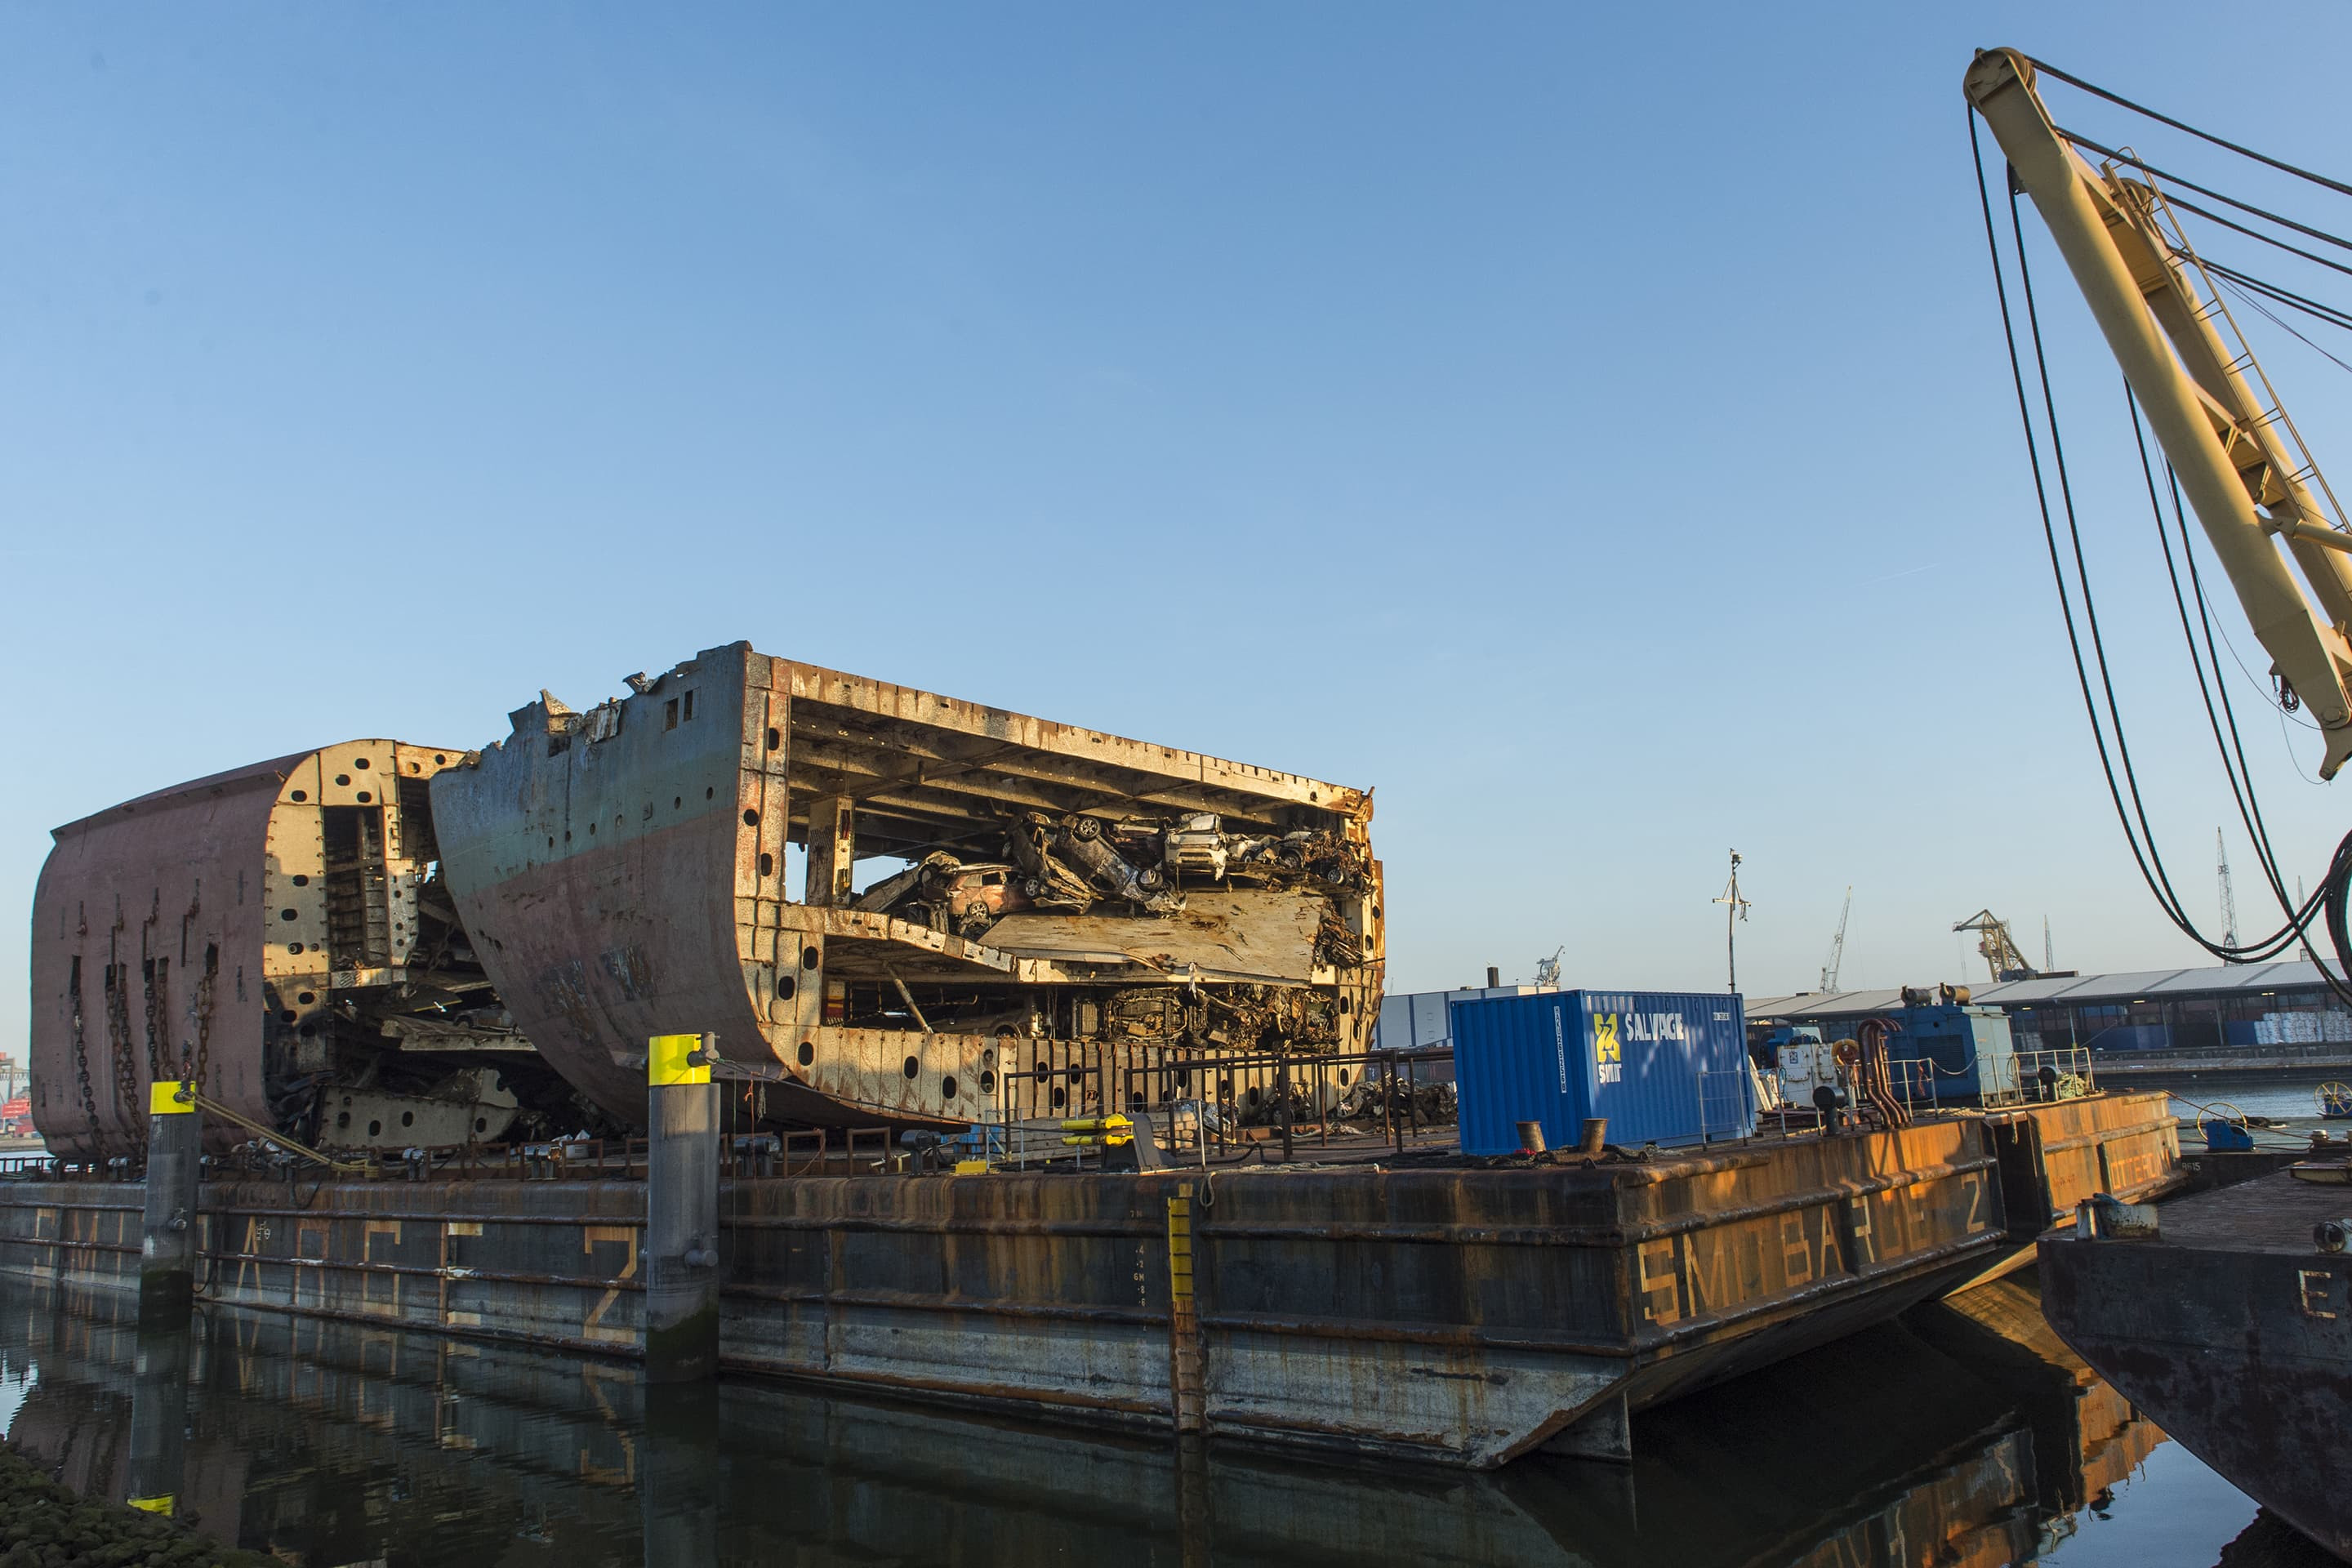 Two wreck sections on Smitbarge 2